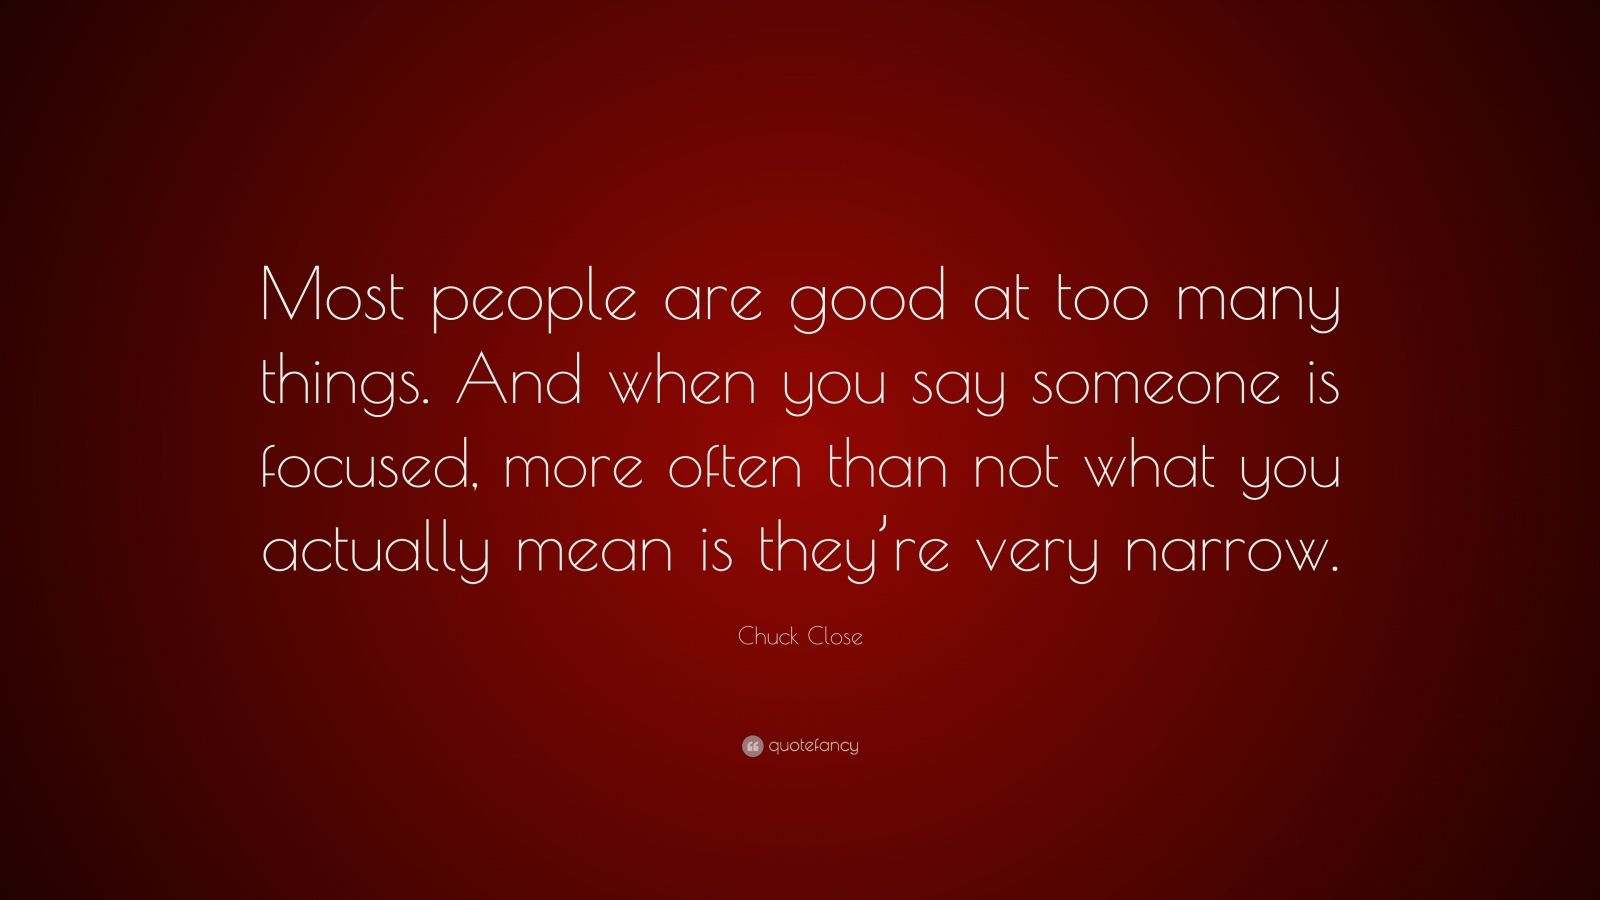 """Chuck Close Quote: """"Most people are good at too many things. And when you say someone is focused, more often than not what you actually mean is they're very narrow."""""""